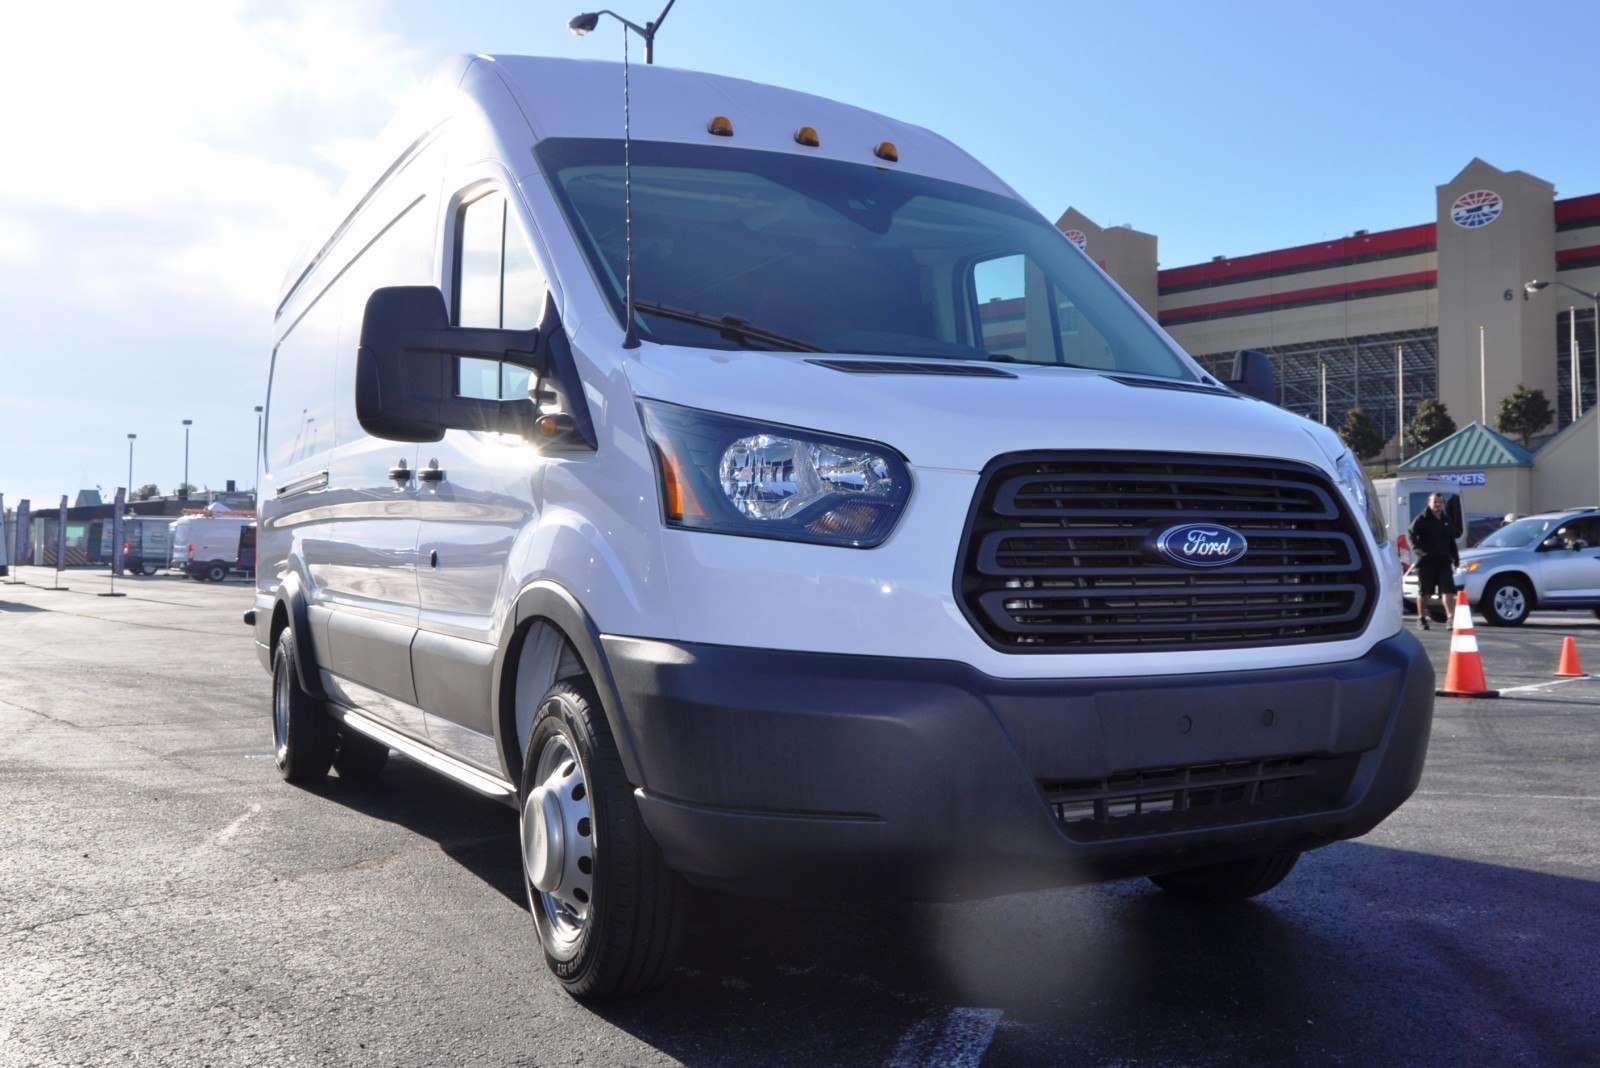 hd track drive review 2015 ford transit powerstroke diesel high roof long box cargo van 11. Black Bedroom Furniture Sets. Home Design Ideas